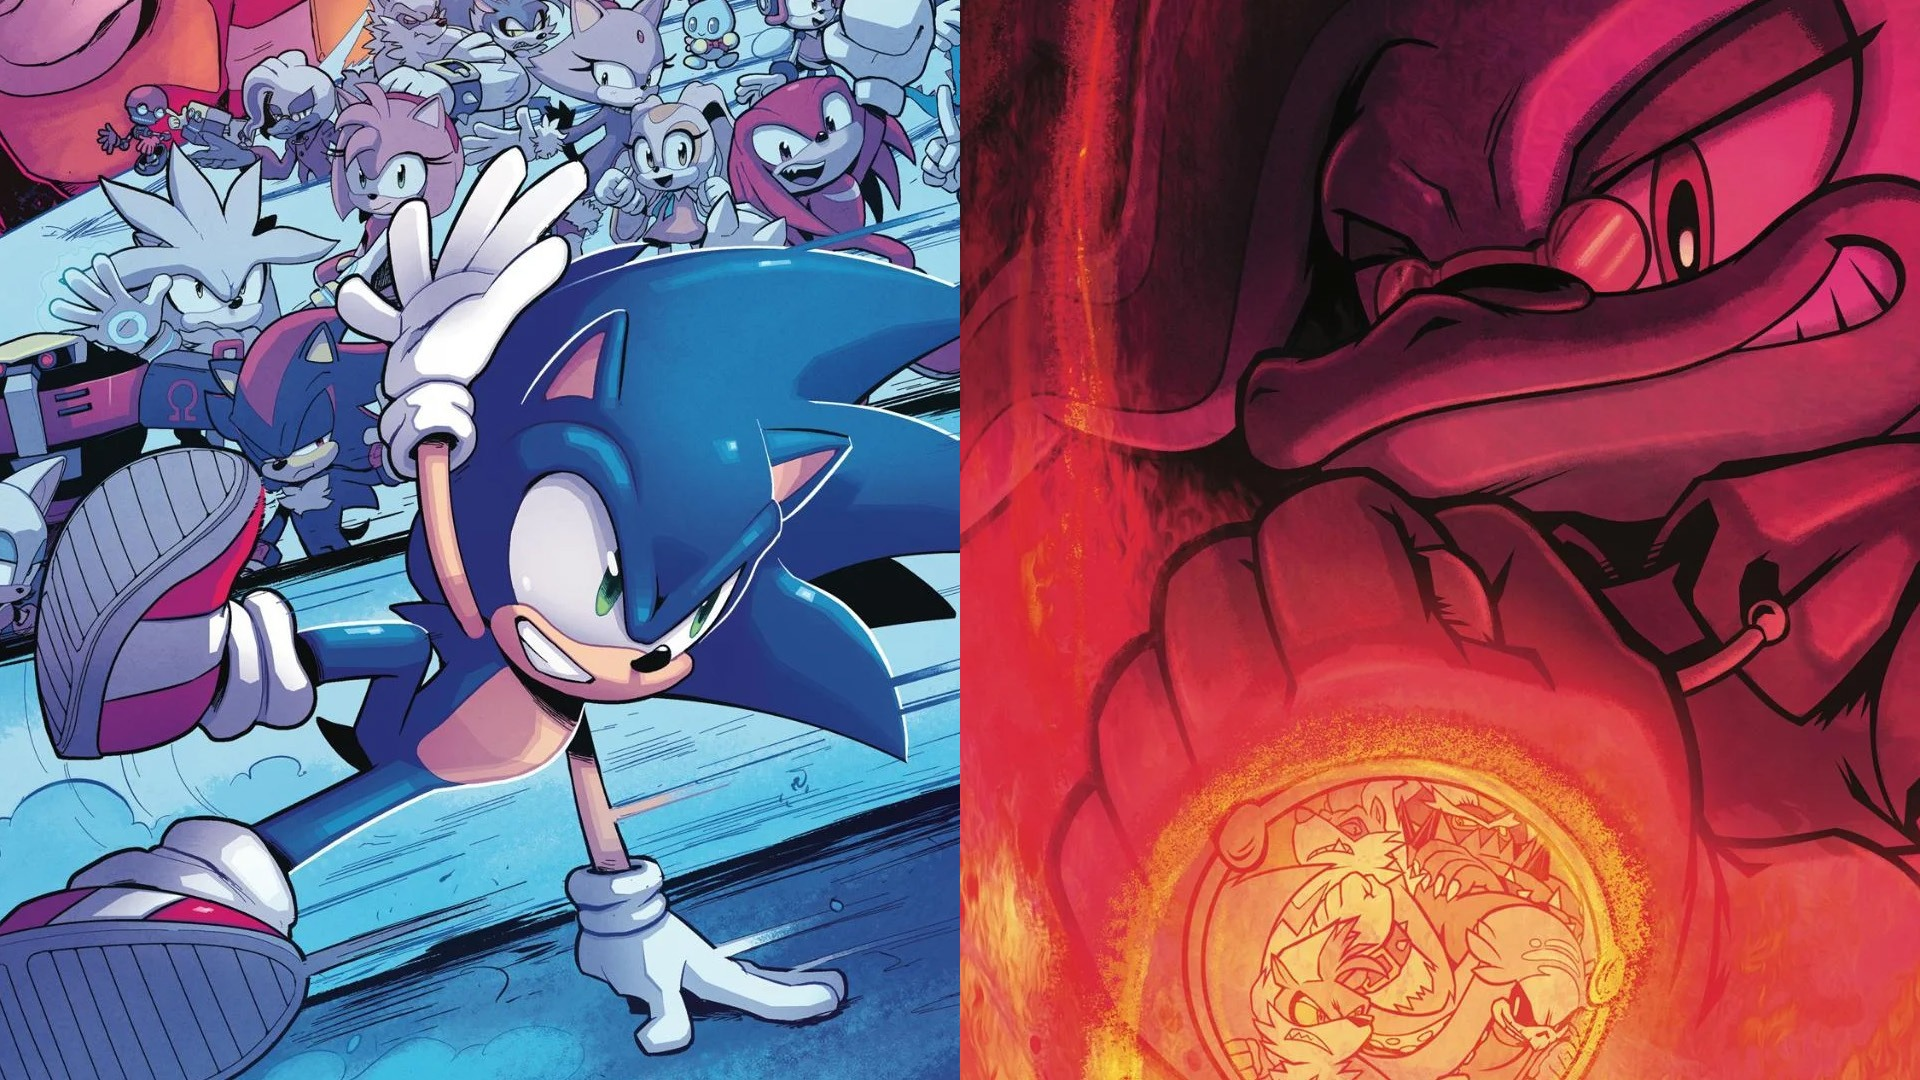 IDW Sonic the Hedgehog comic gets new writer, spin-off Bad Guys miniseries